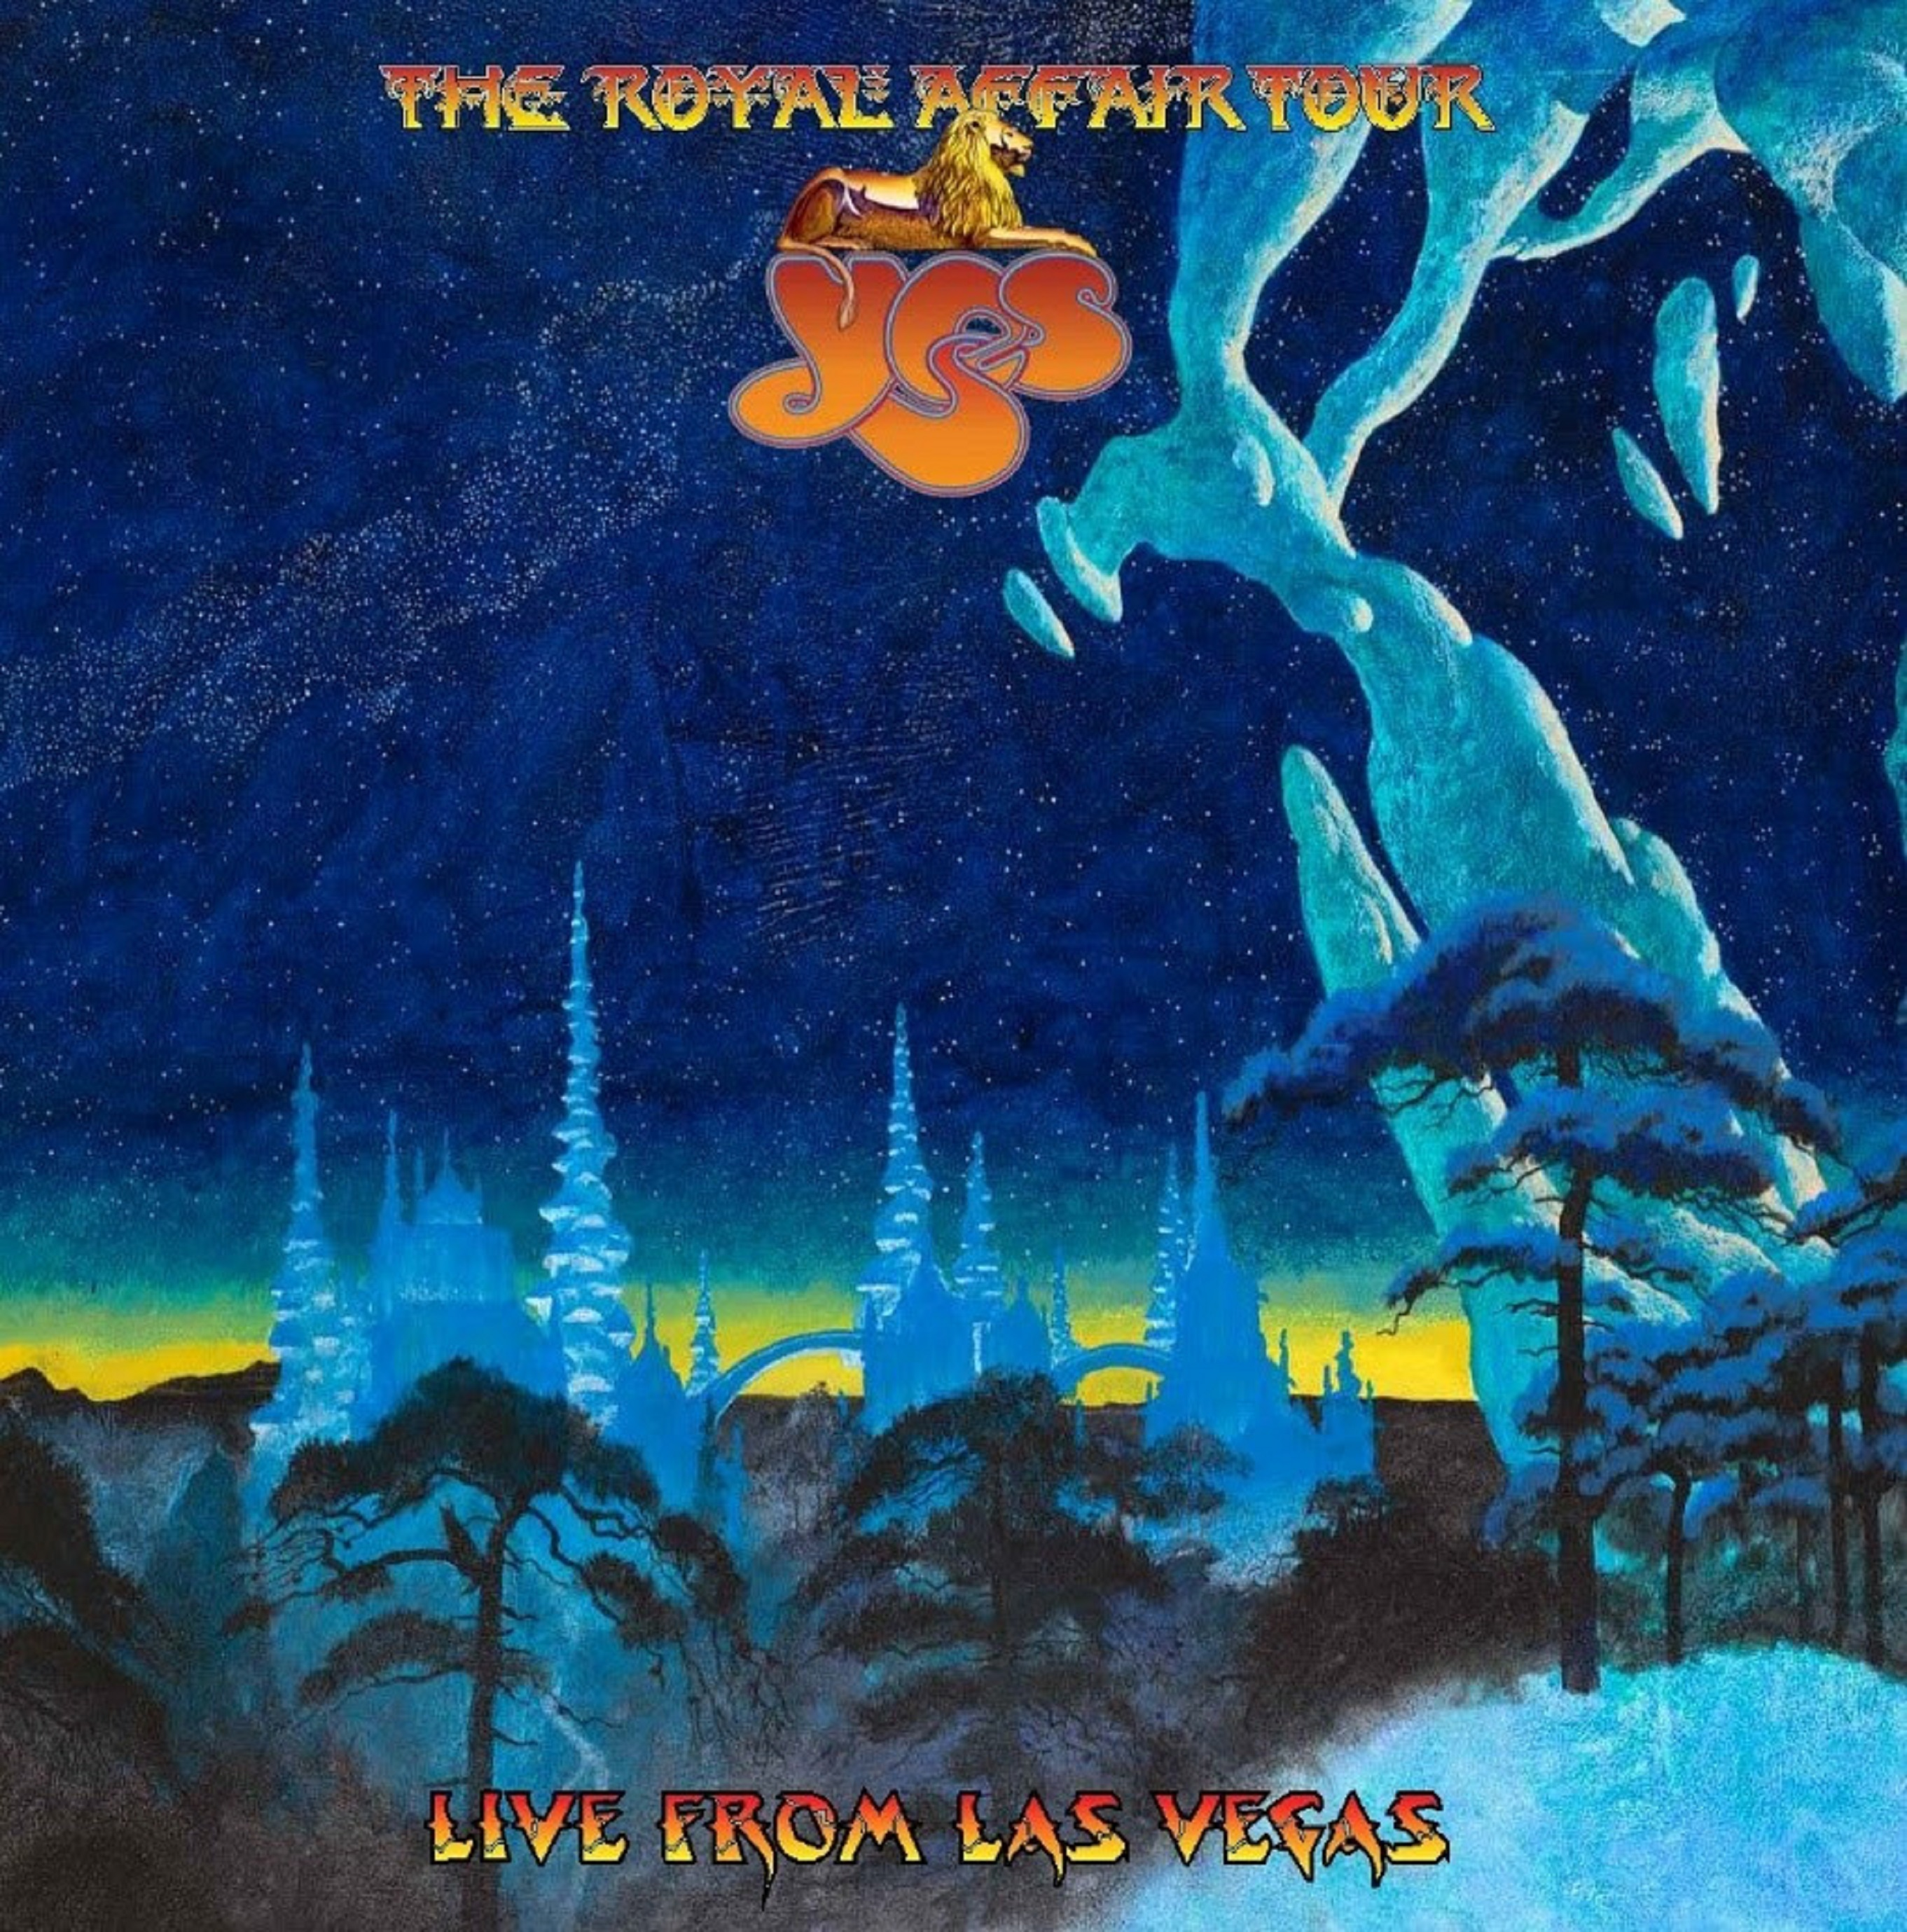 YES To Release New Album, 'The Royal Affair Tour, Live From Las Vegas,' October 30